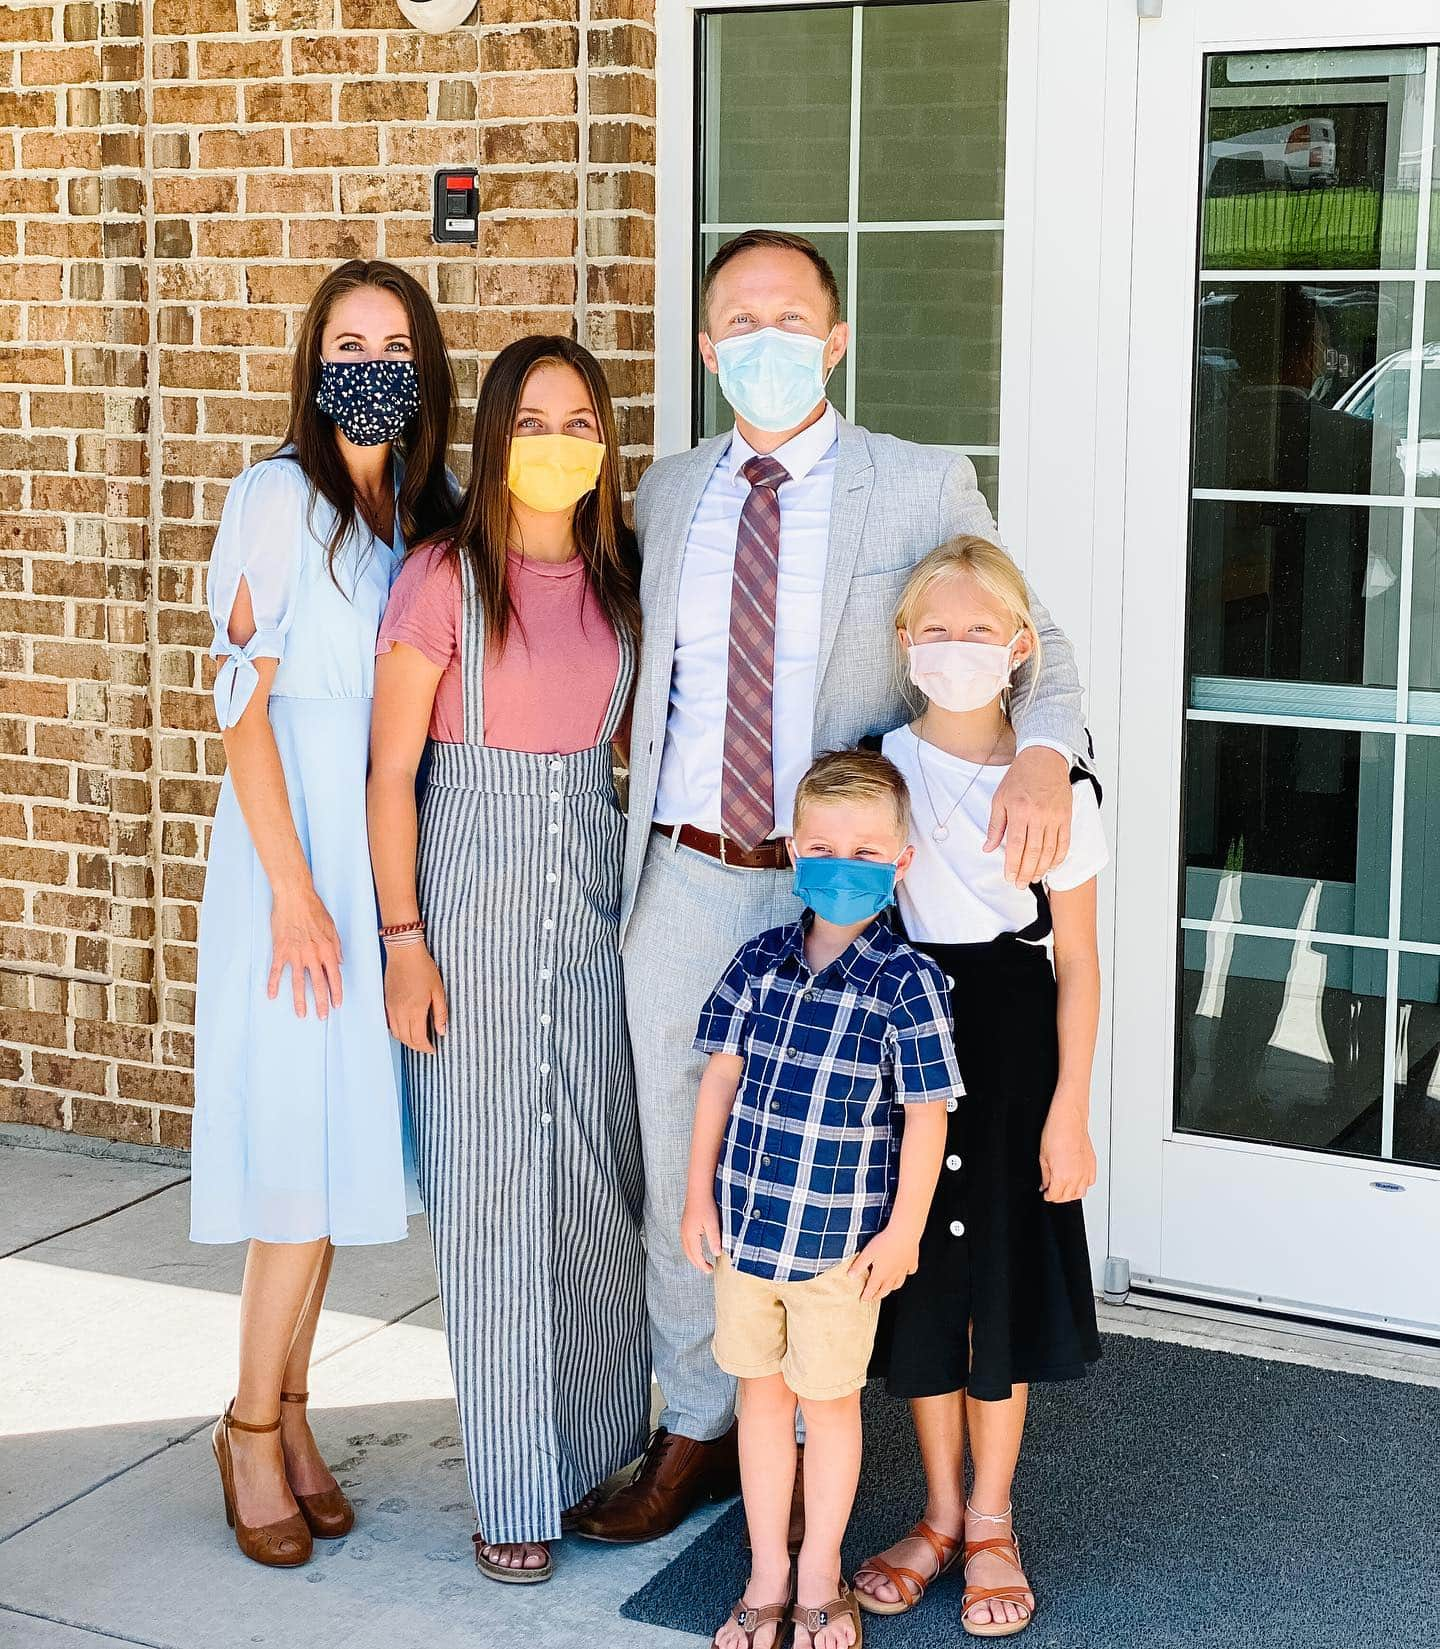 A photo of a family all wearing masks outside of a church building.